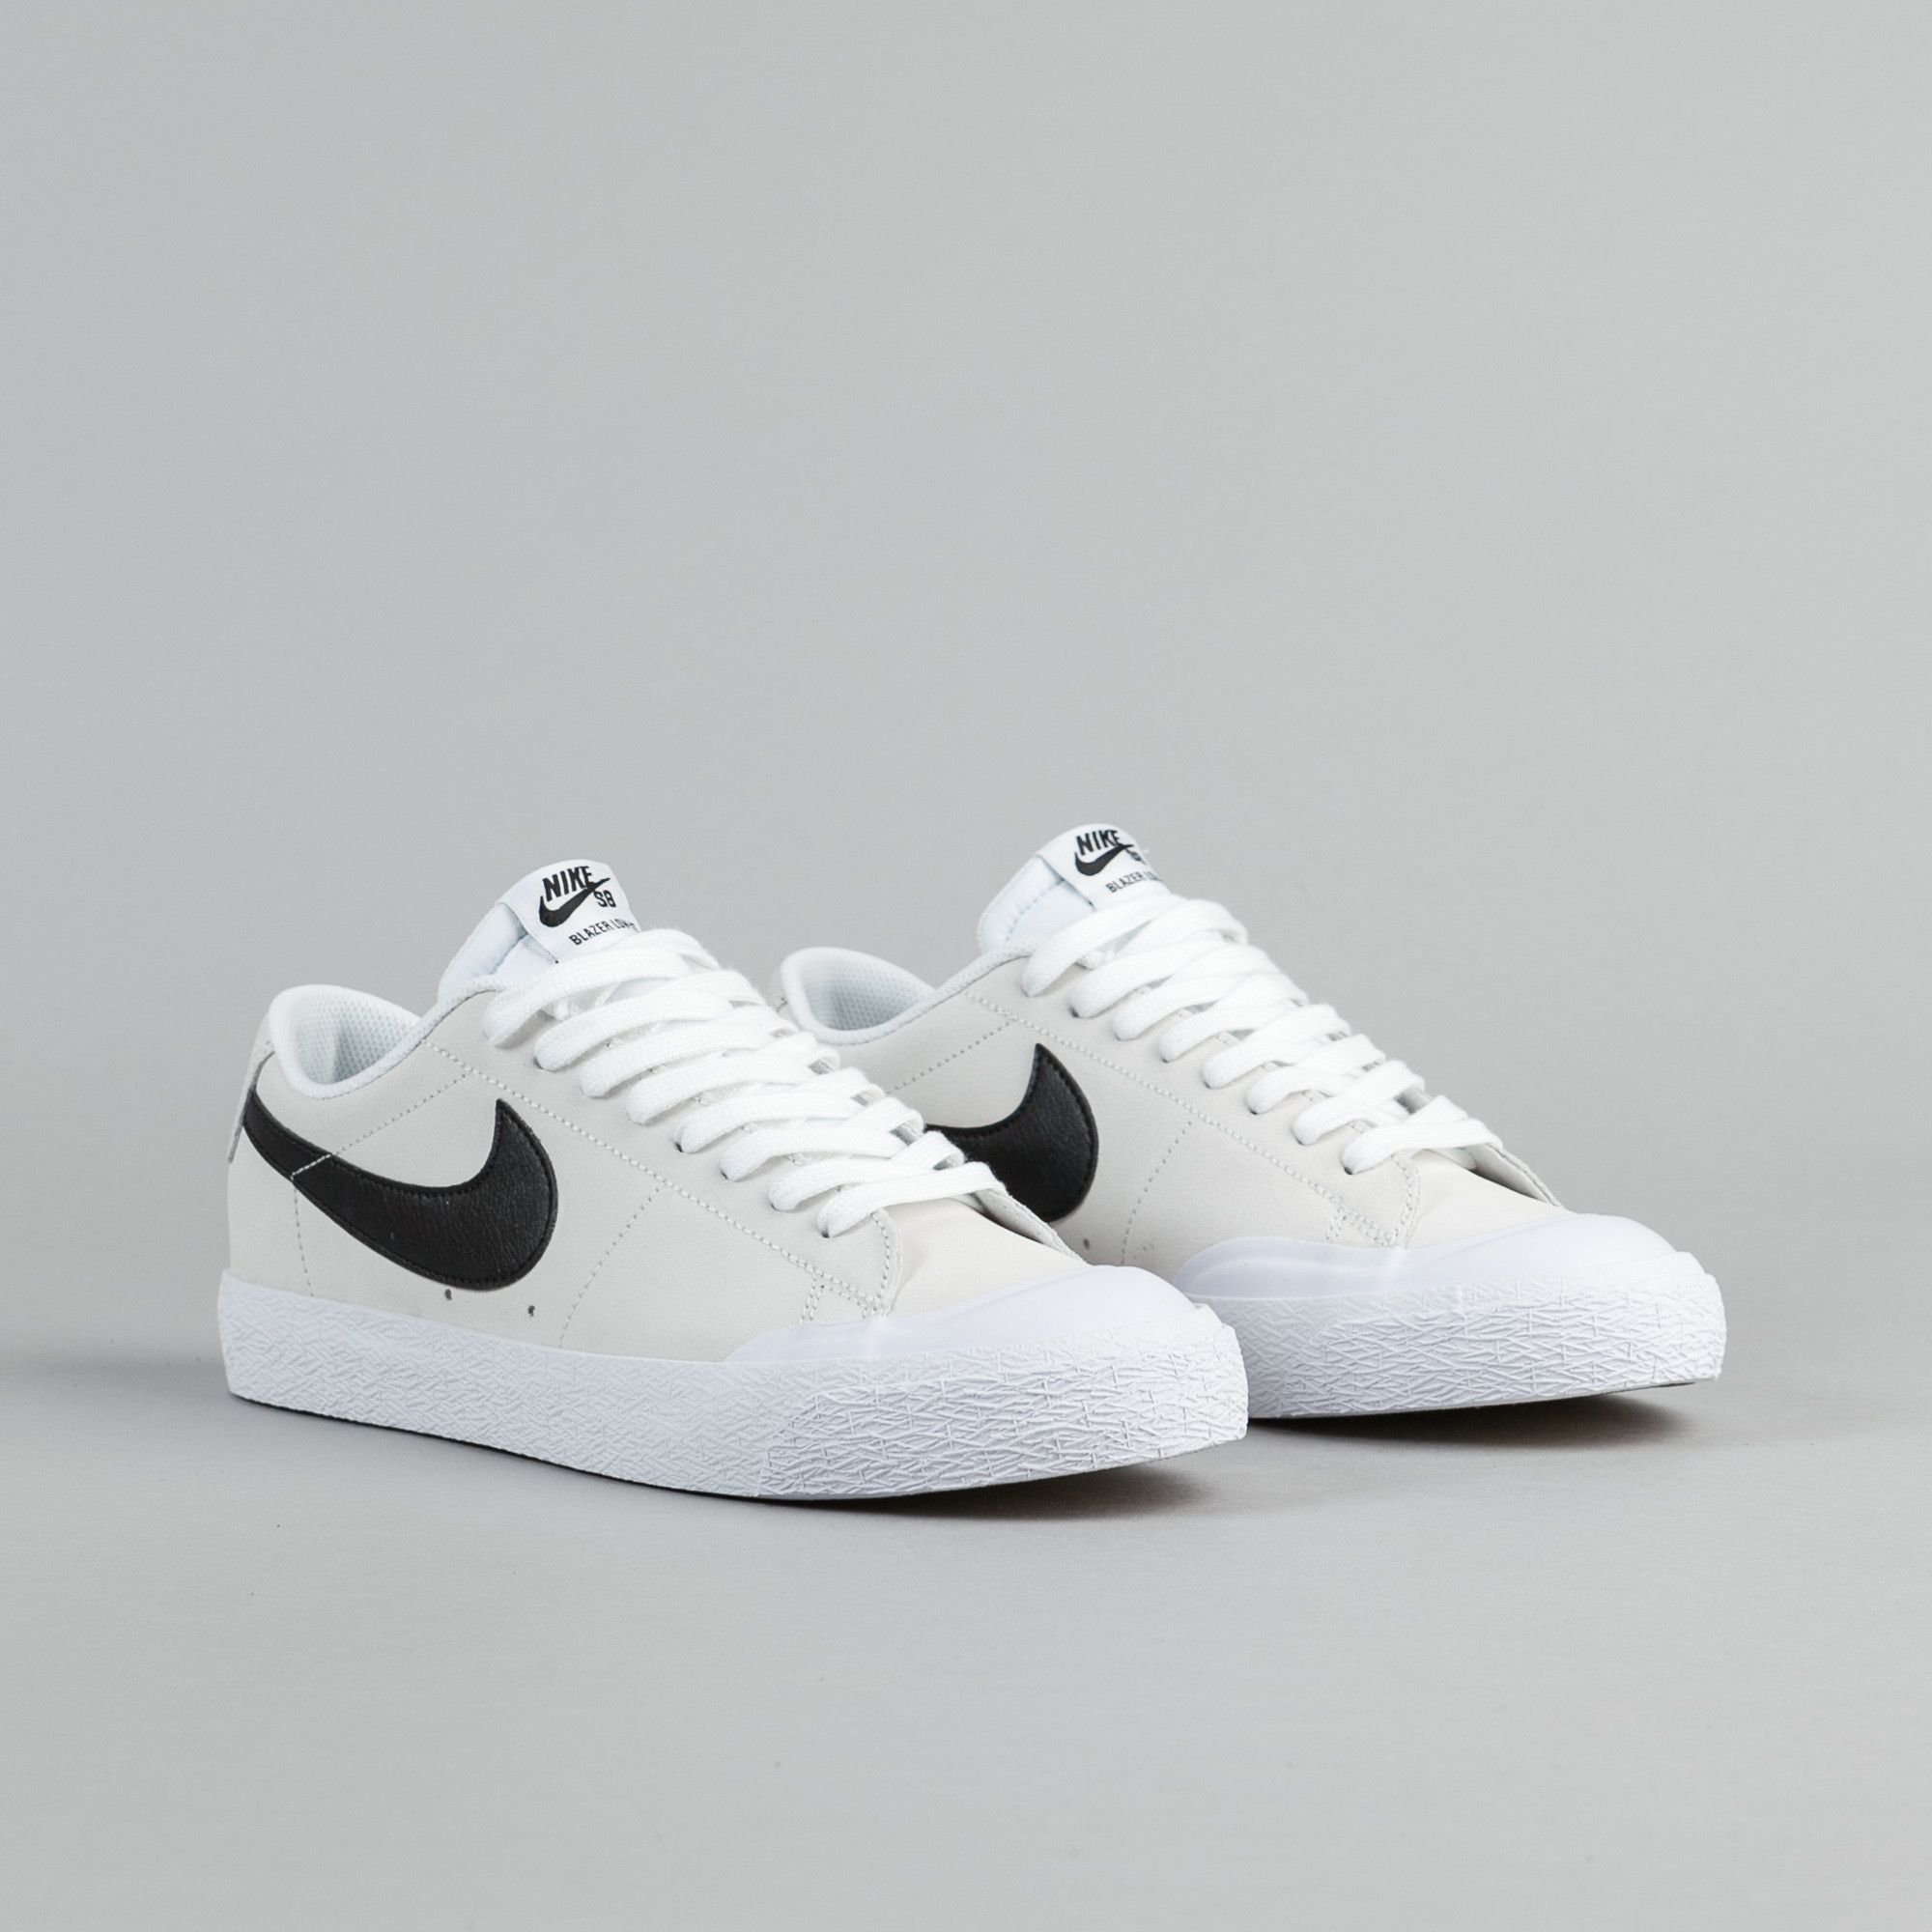 best service 9522a 7e268 Nike SB Blazer Low XT Shoes - Summit White / Black - White ...